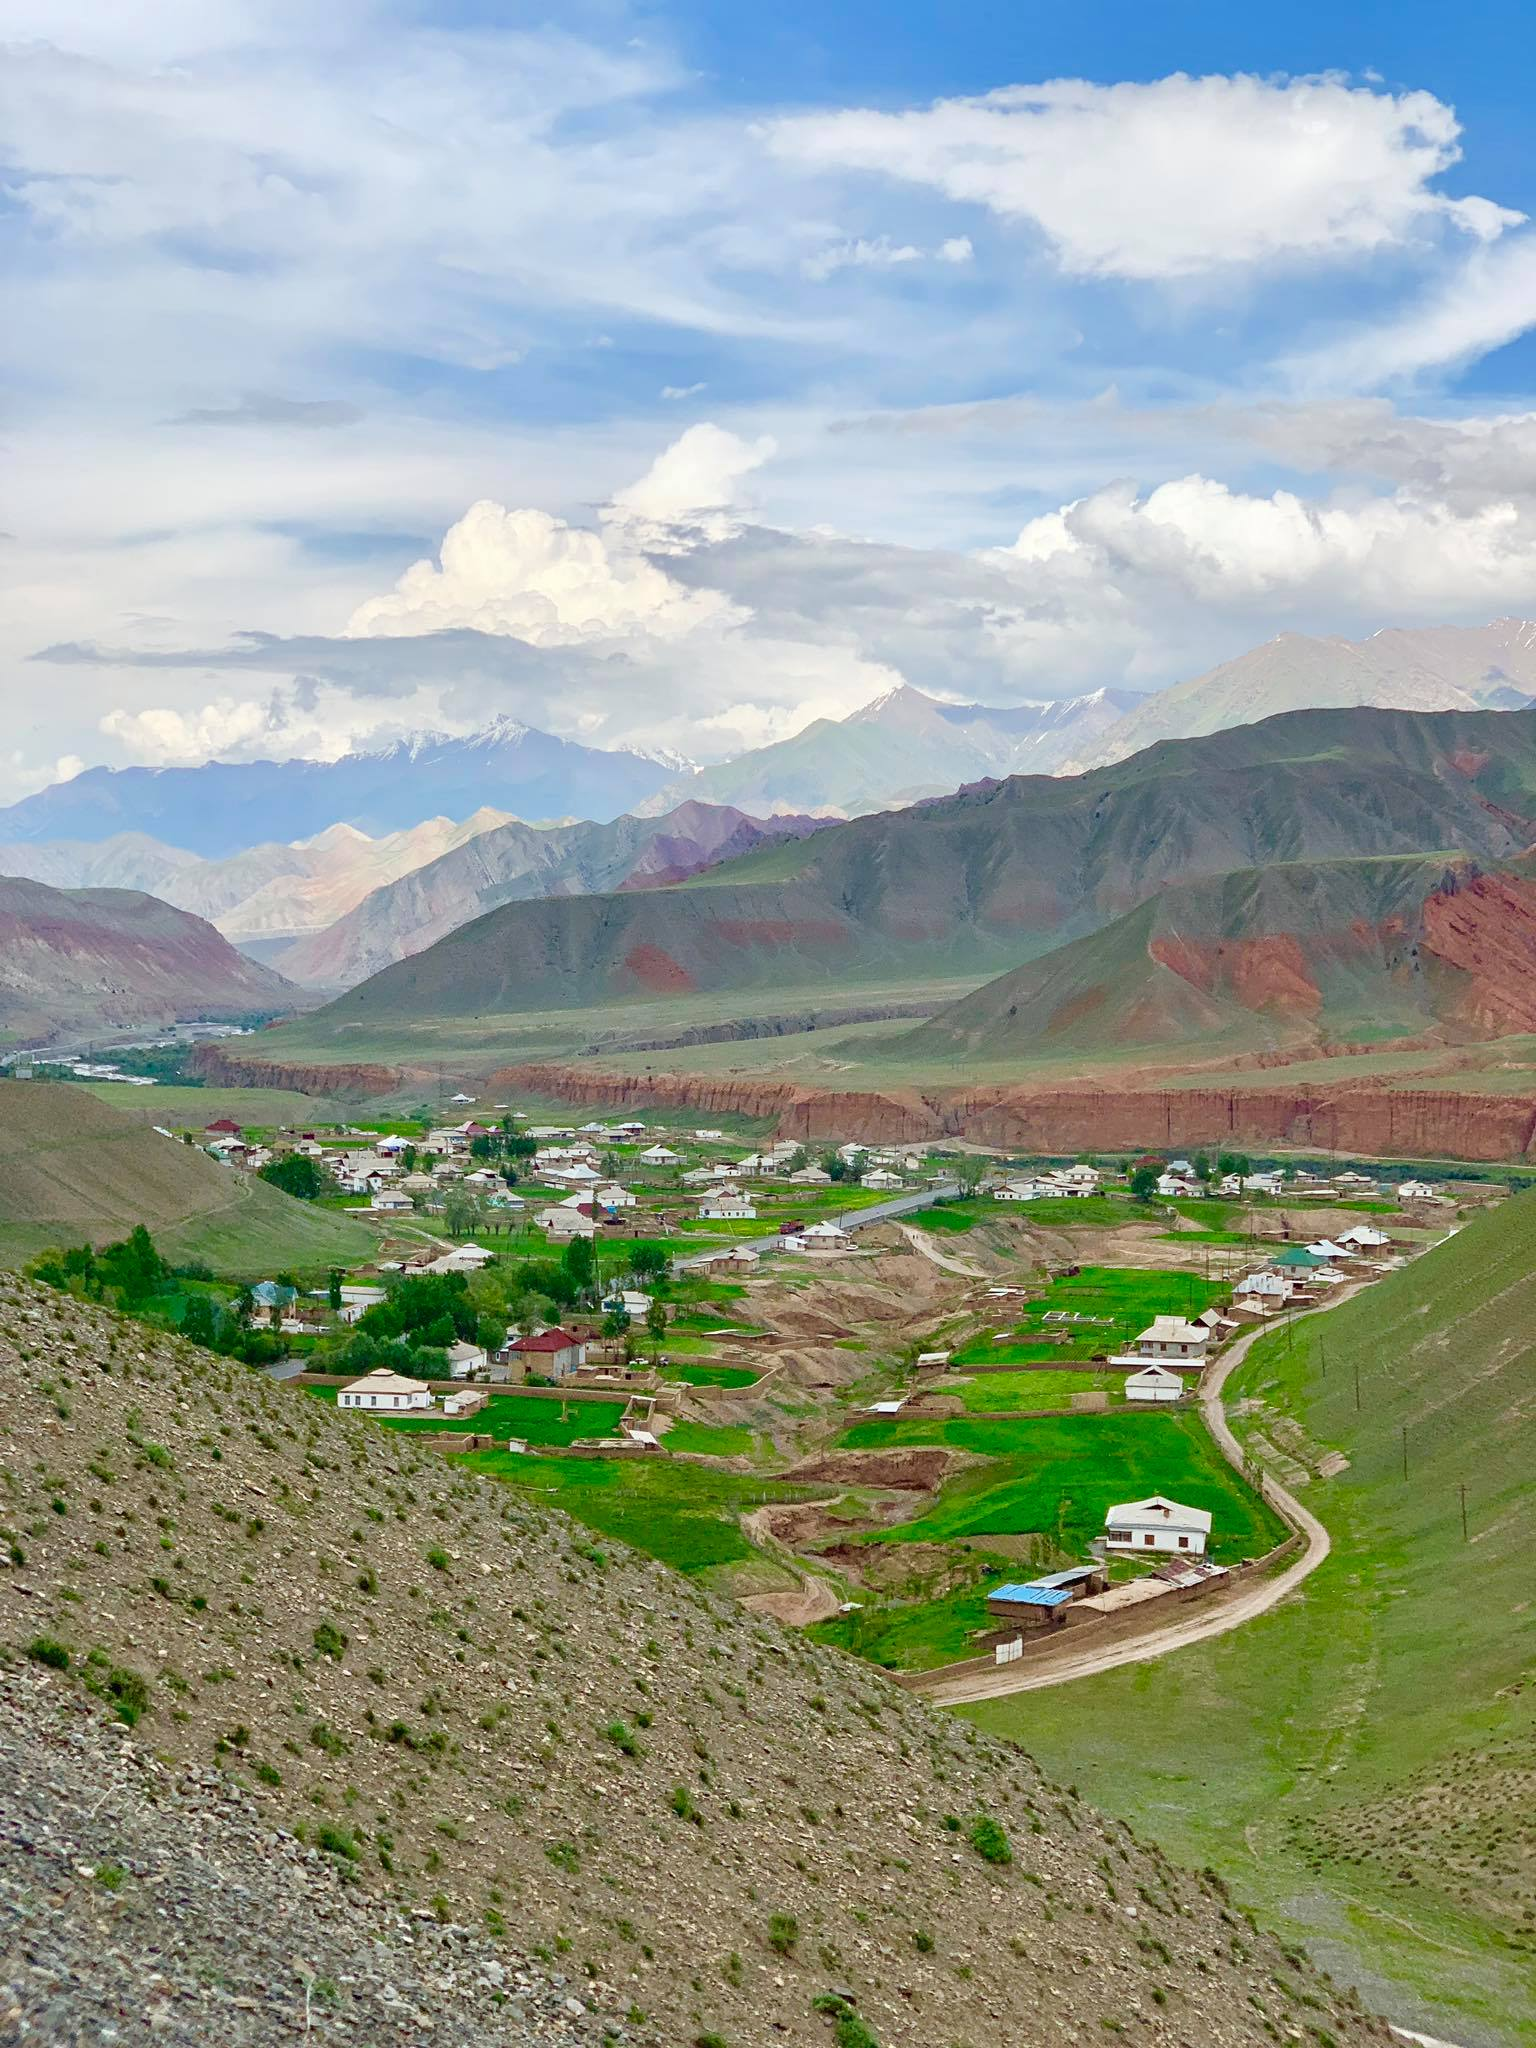 Kach Solo Travels in 2019 Hello from KYRGYZSTAN, my 128th country13.jpg